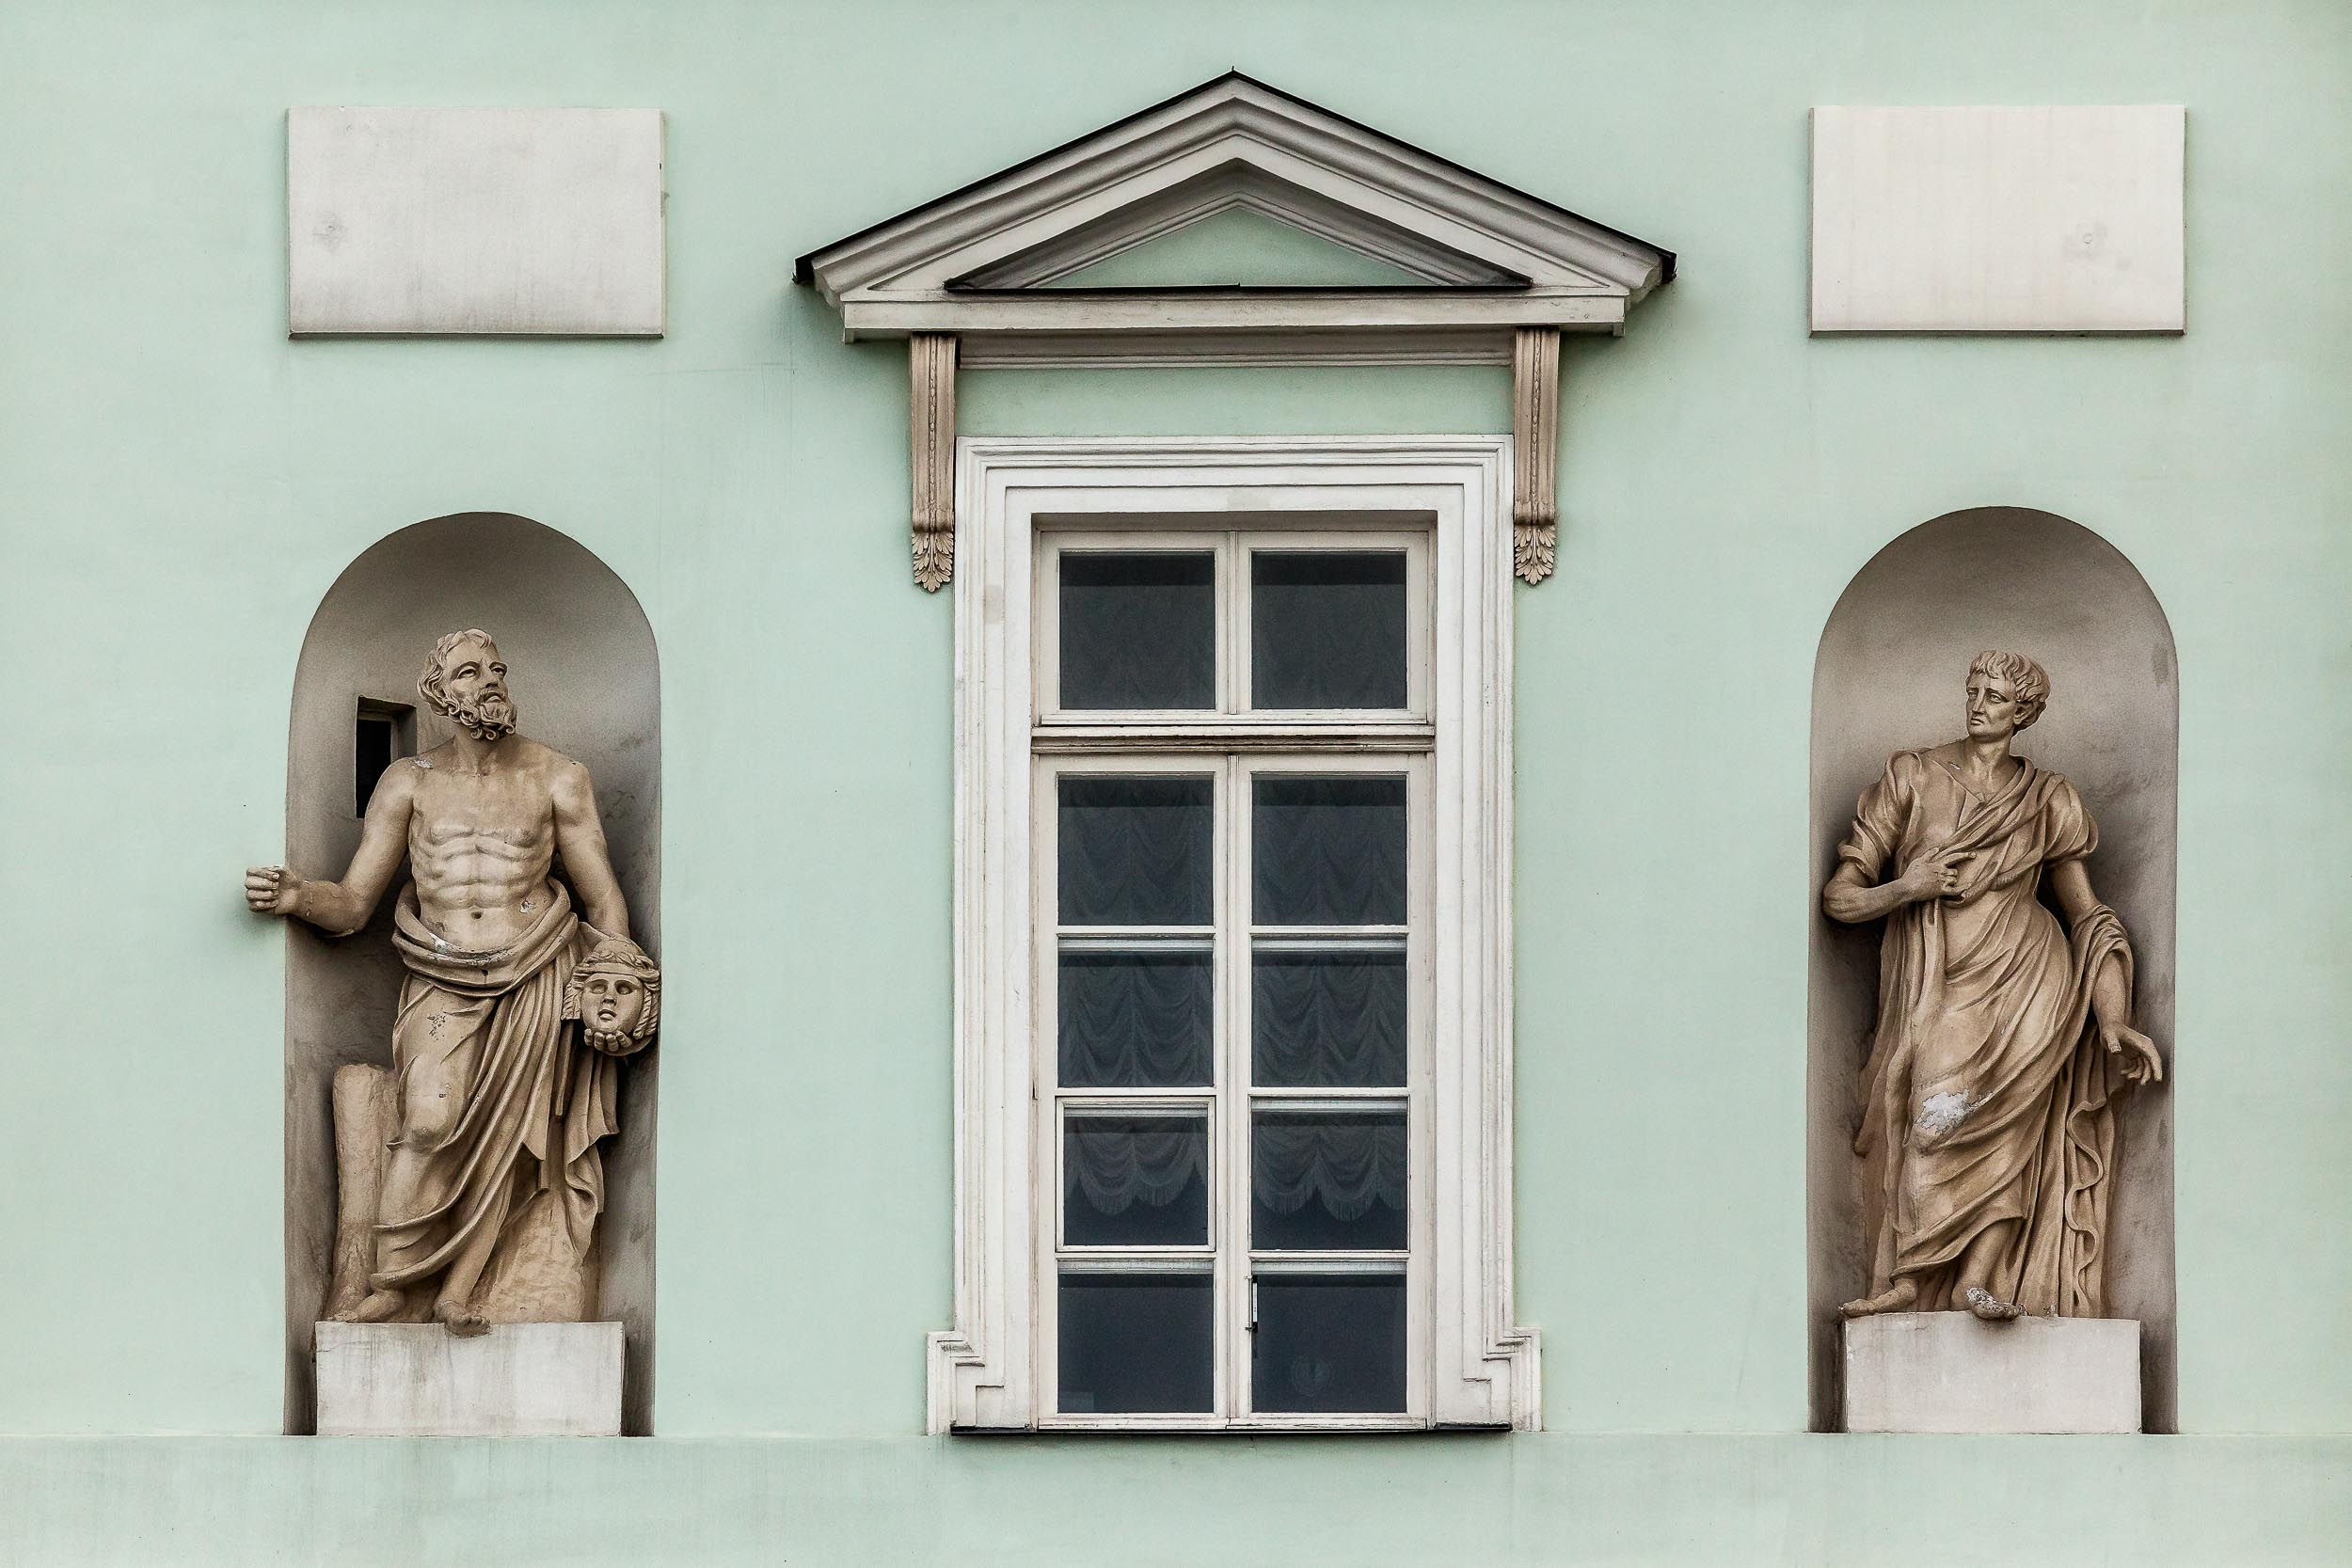 These  two statues , on either side of a window, is just one of hundreds of fascinating sites from a  canal cruise  in  St. Petersburg, Russia . This photo is composed very much around the notion of  symmetry .